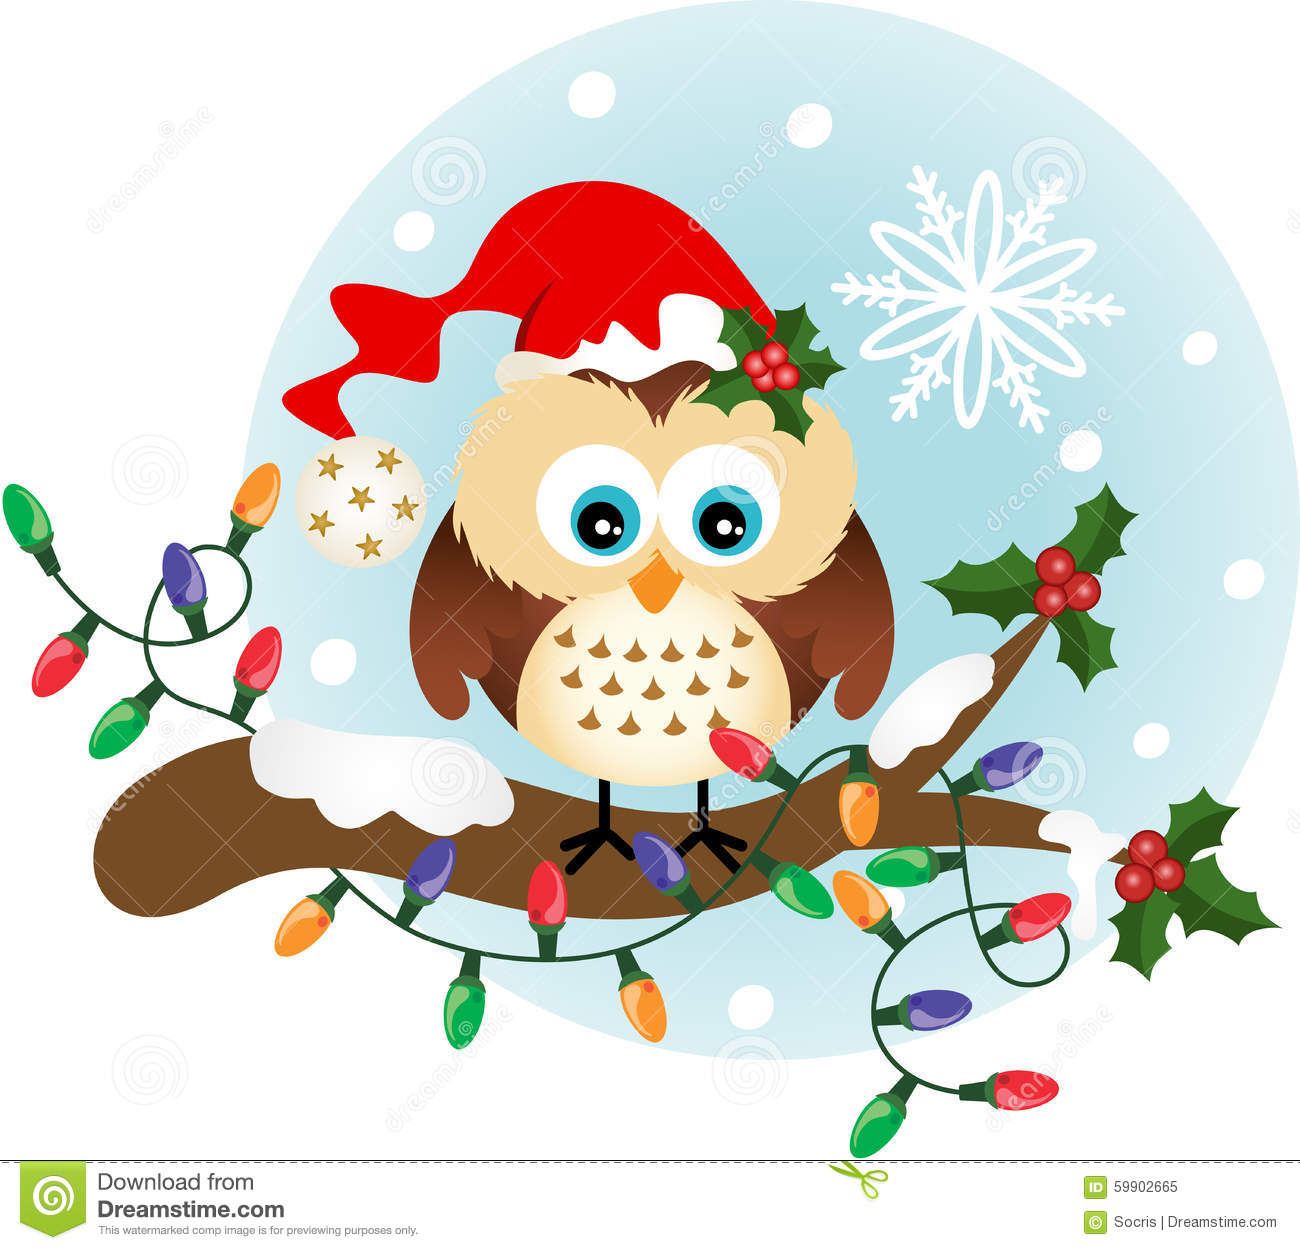 Christmas Owl On Holly Branch Stock Vector - Image: 59902665